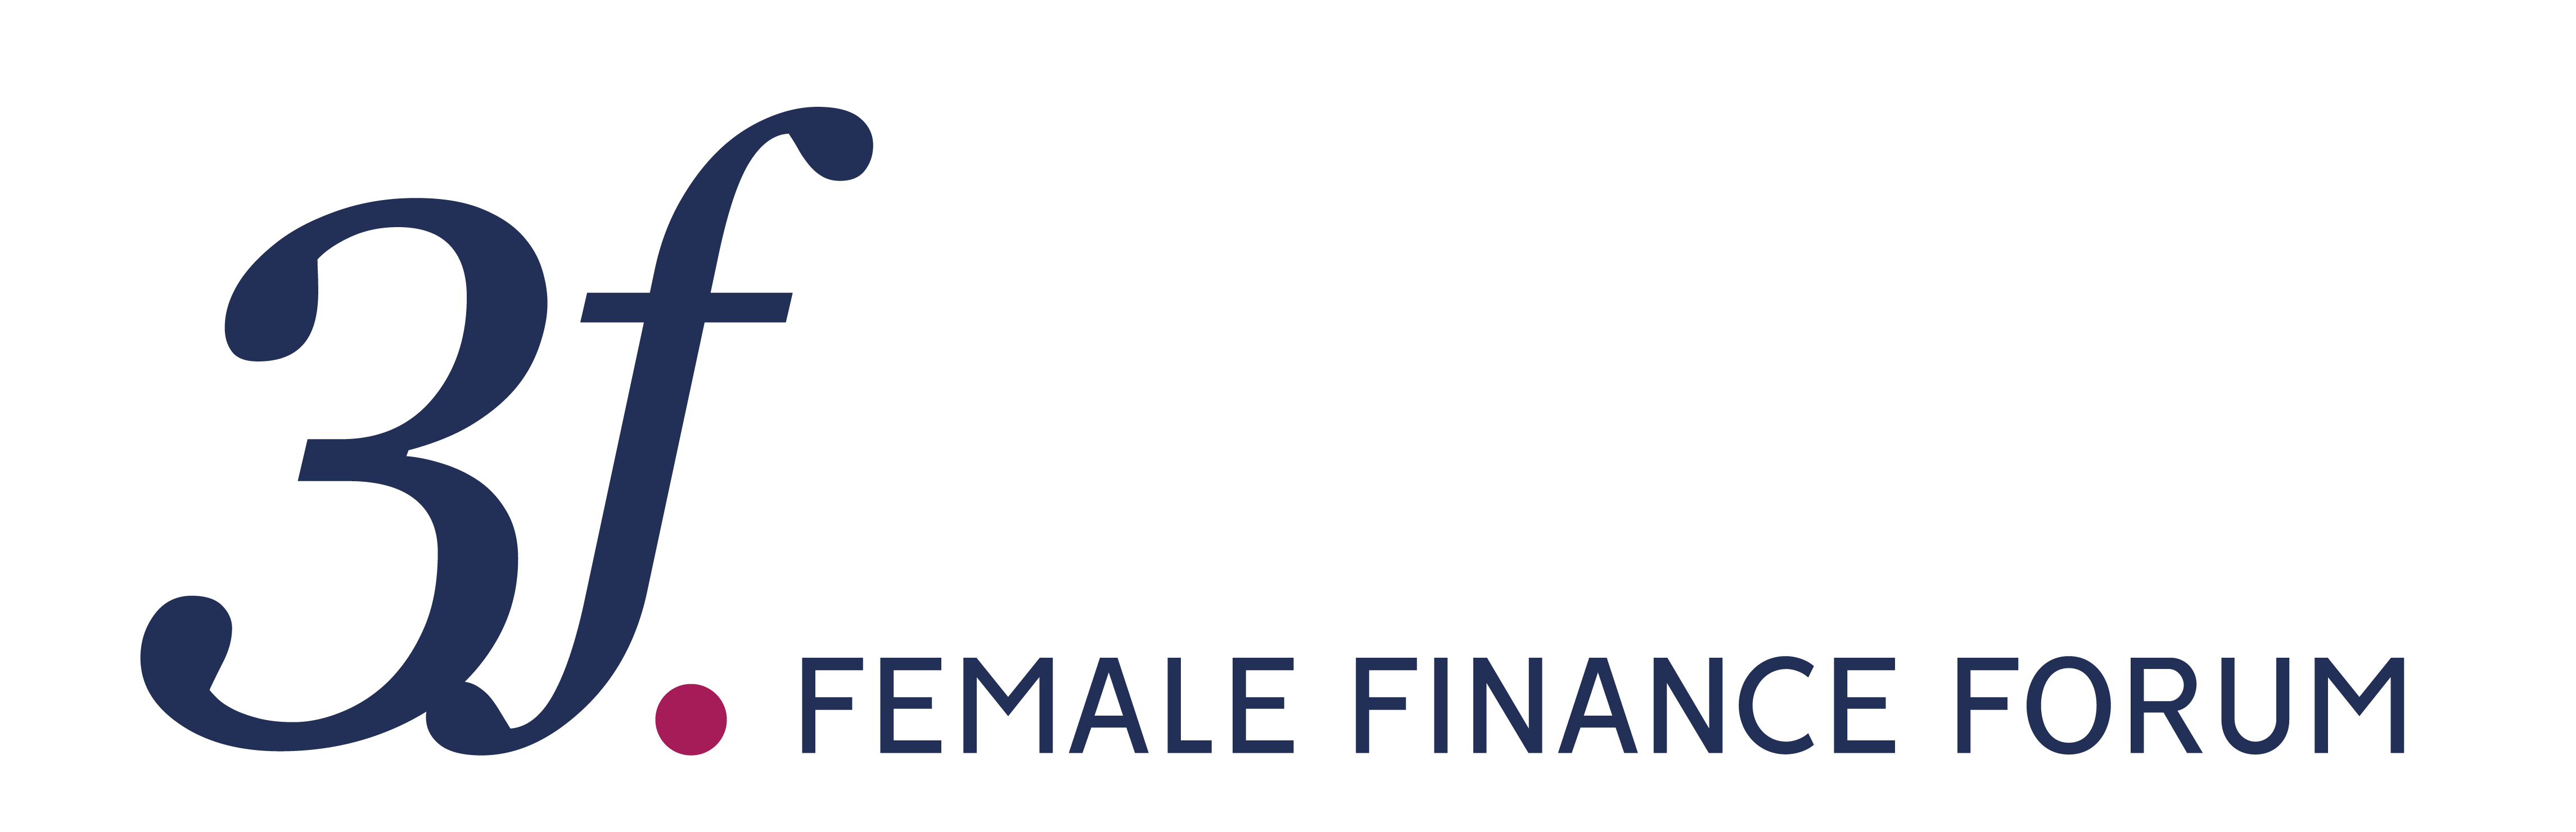 Female Finance Forum